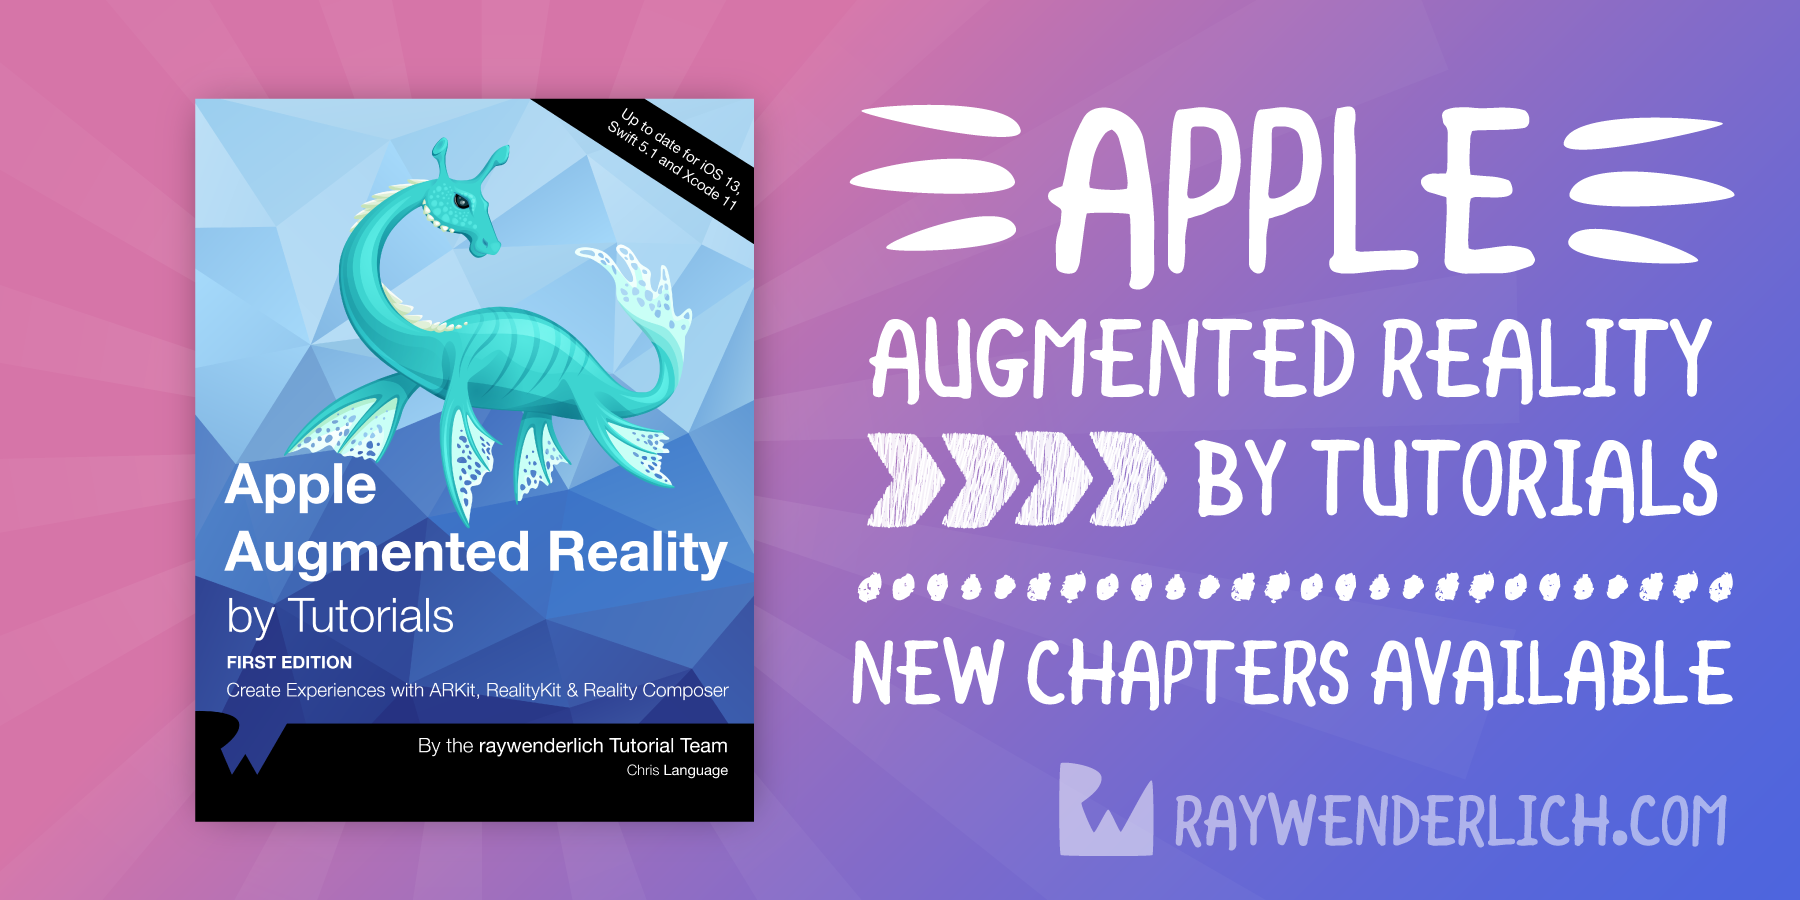 Apple Augmented Reality by Tutorials: Four New Chapters Available!